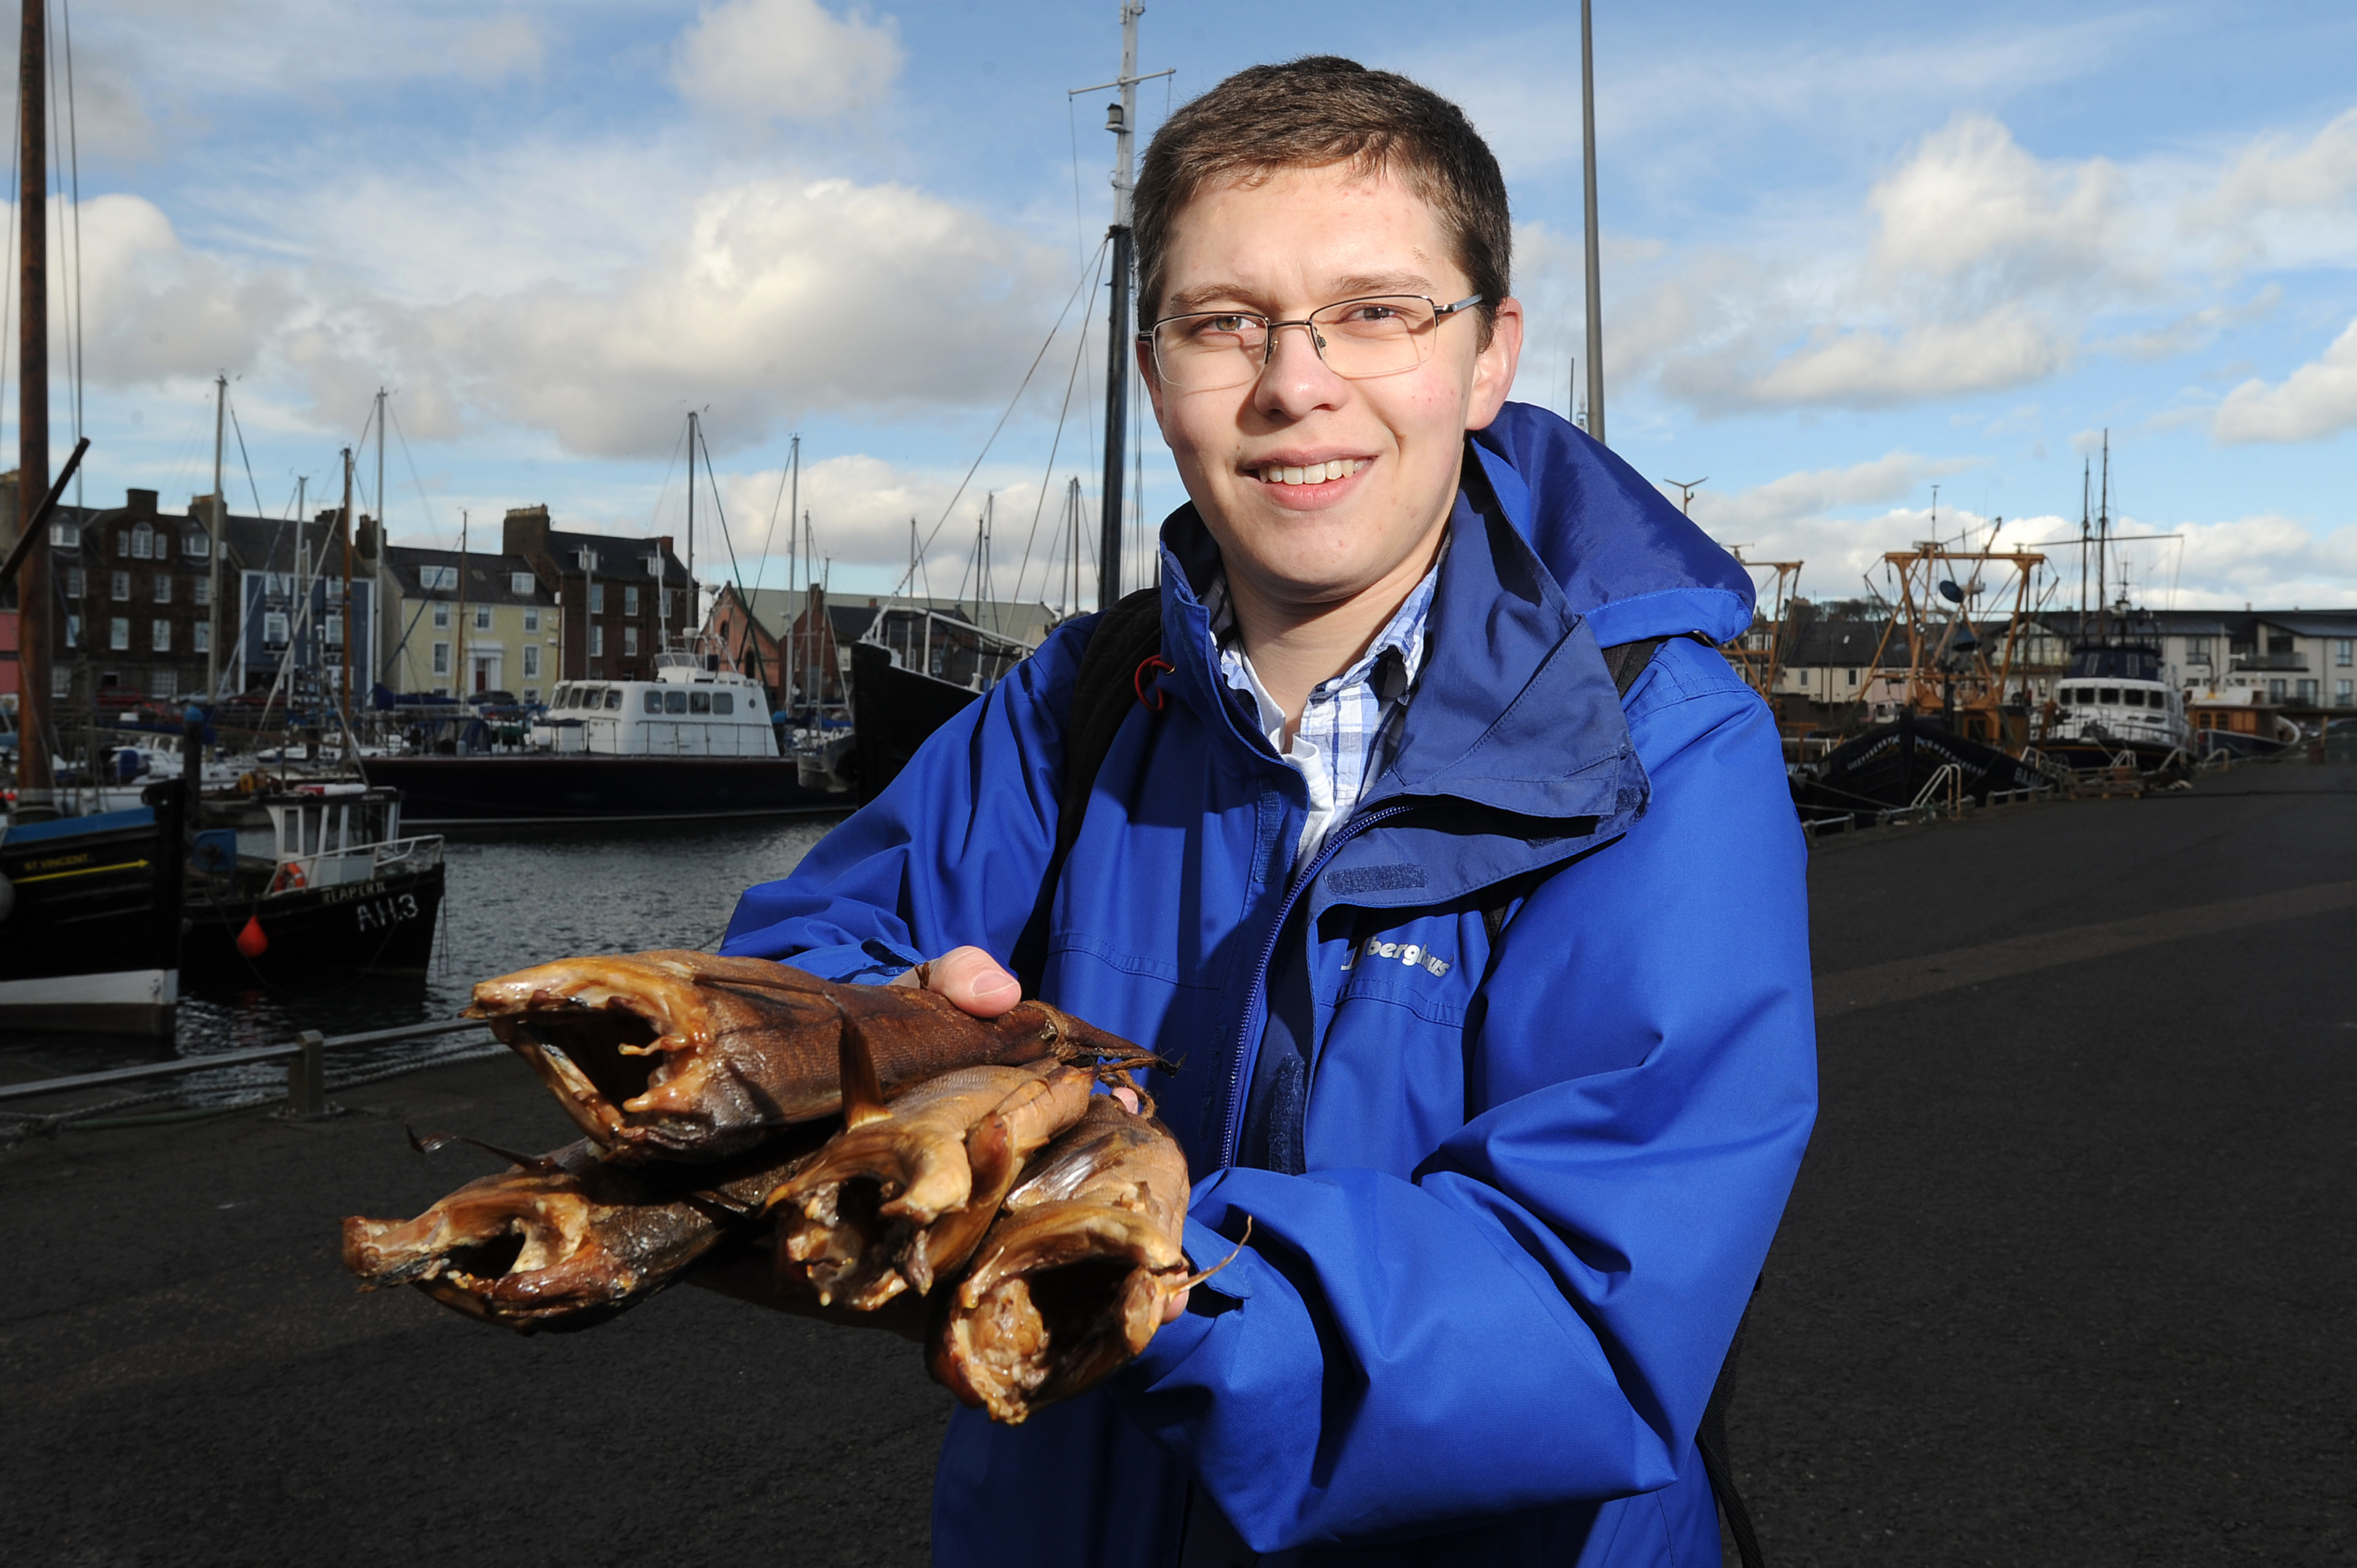 Geologist Hunor Deak fell in love with Arbroath when he moved here from Romania six years ago.